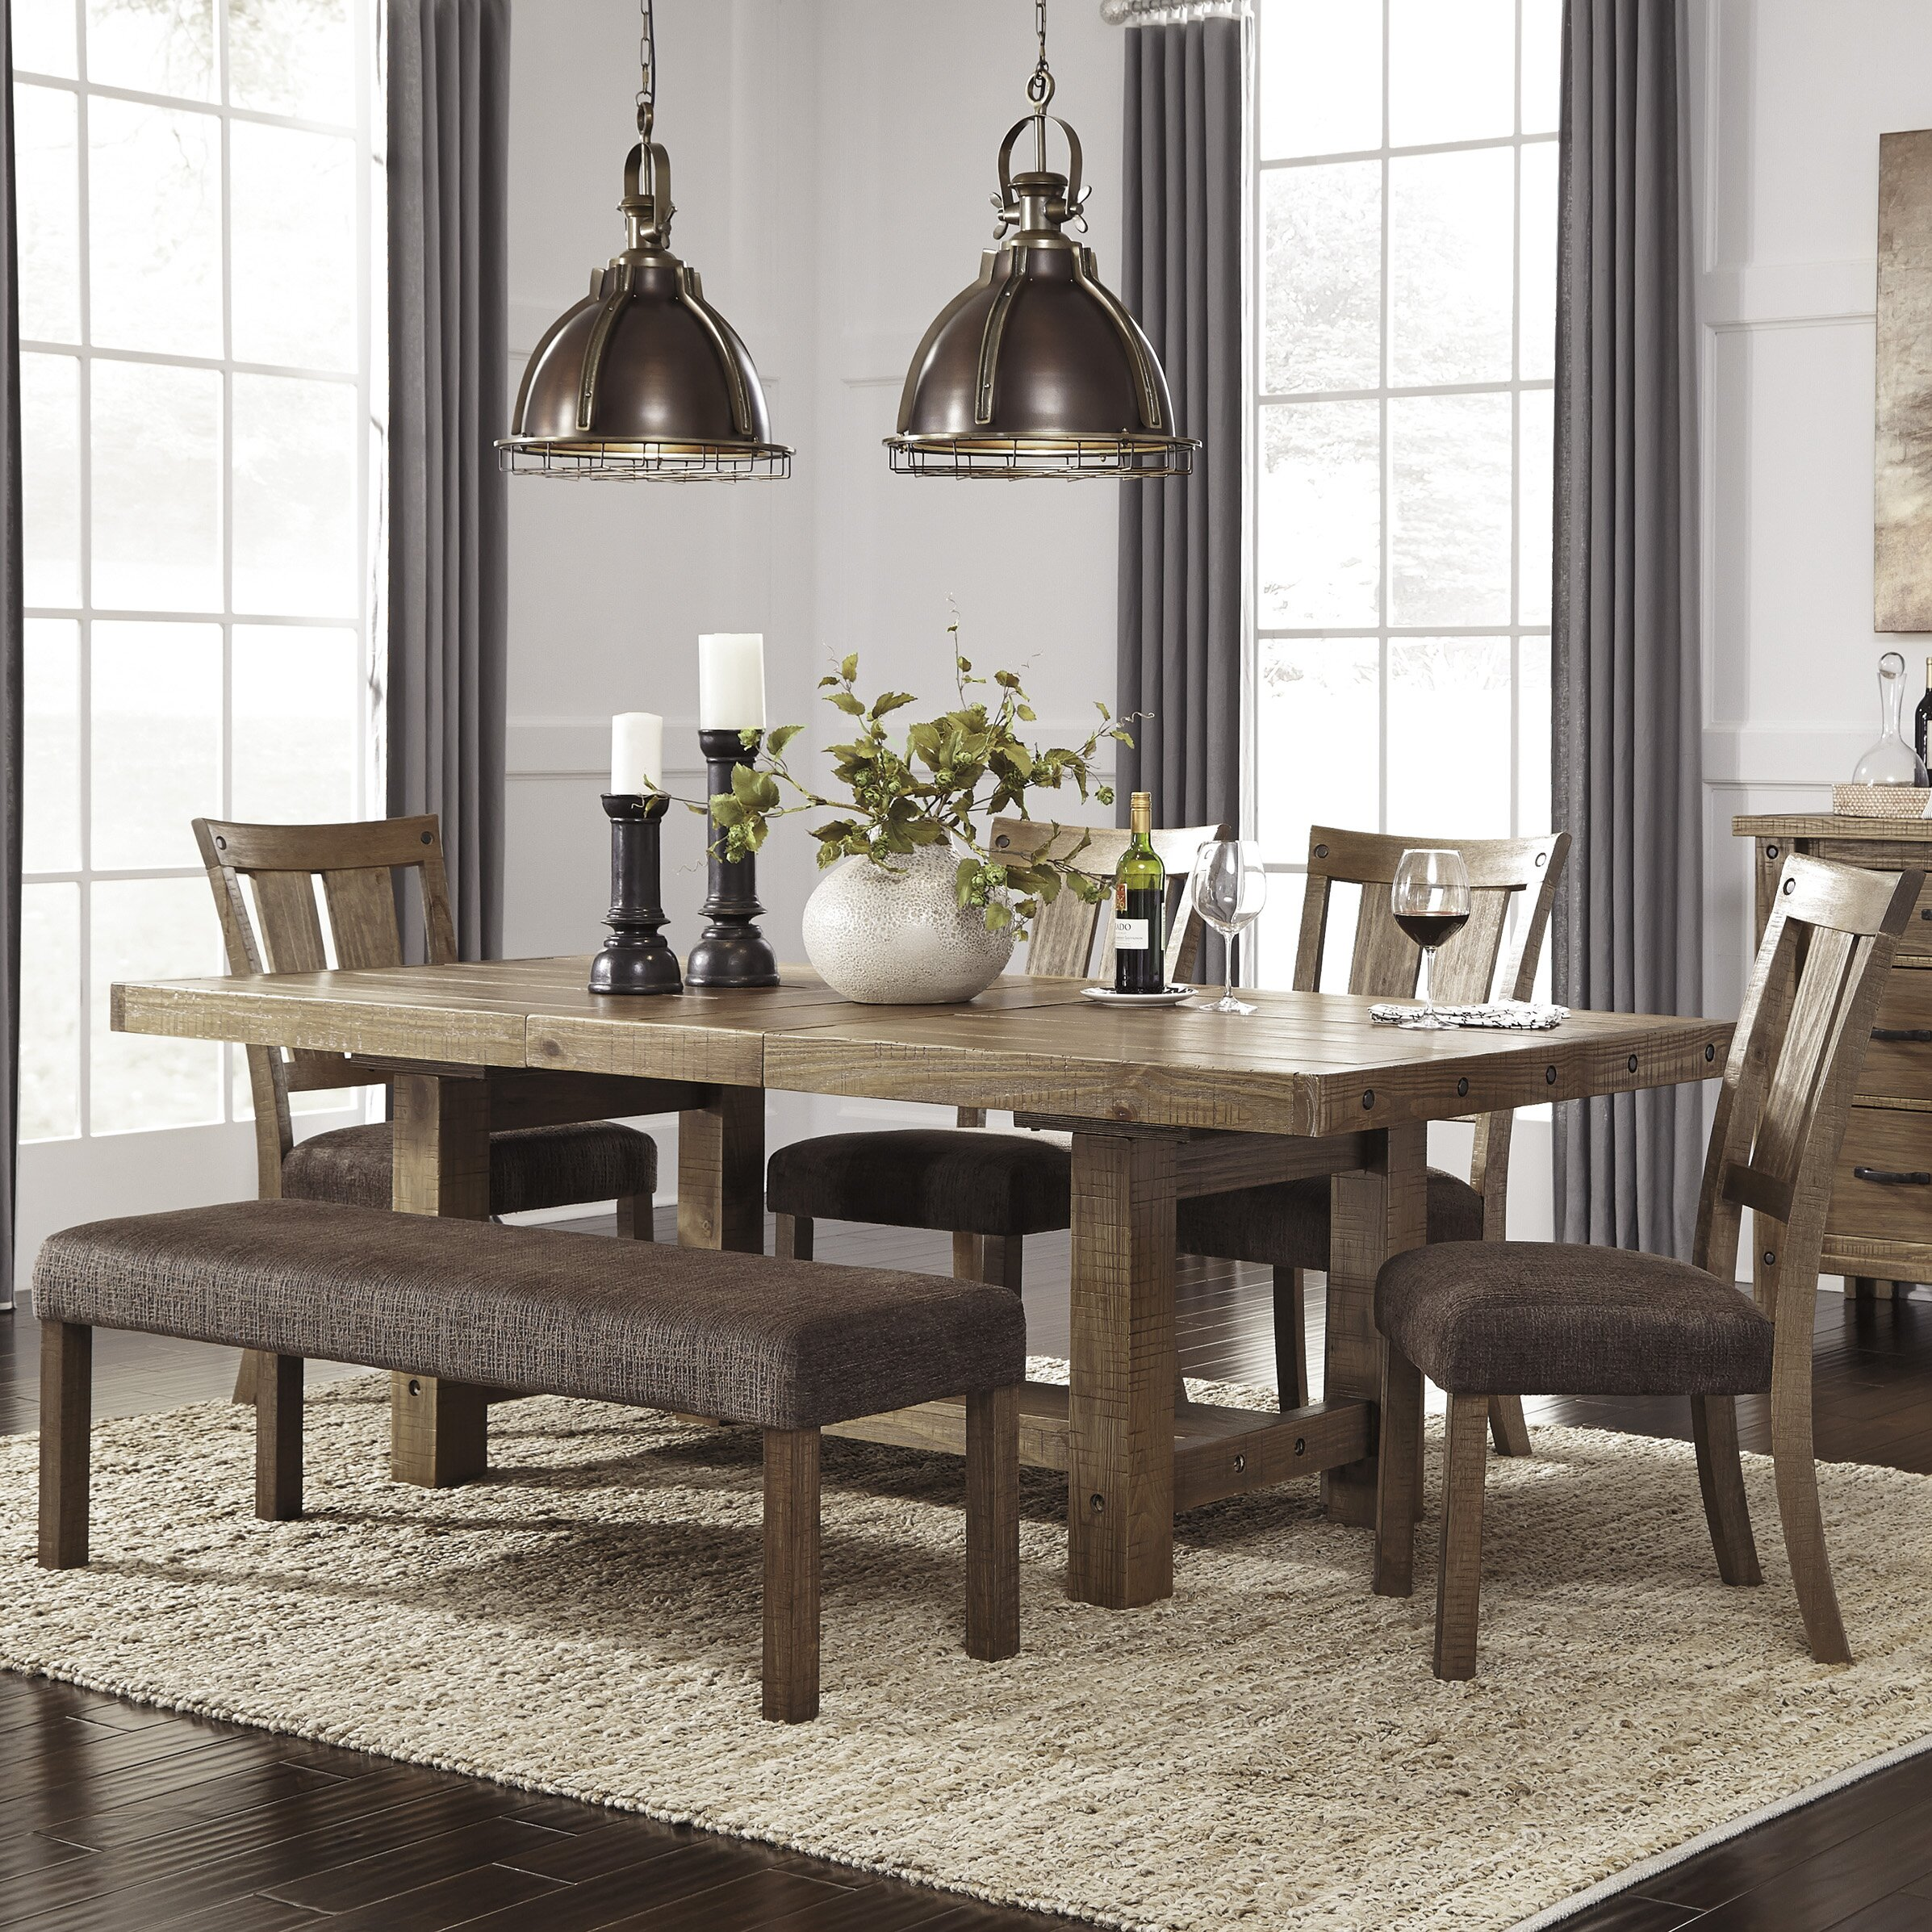 Signature design by ashley 9 piece dining set reviews for Dining room furnishings